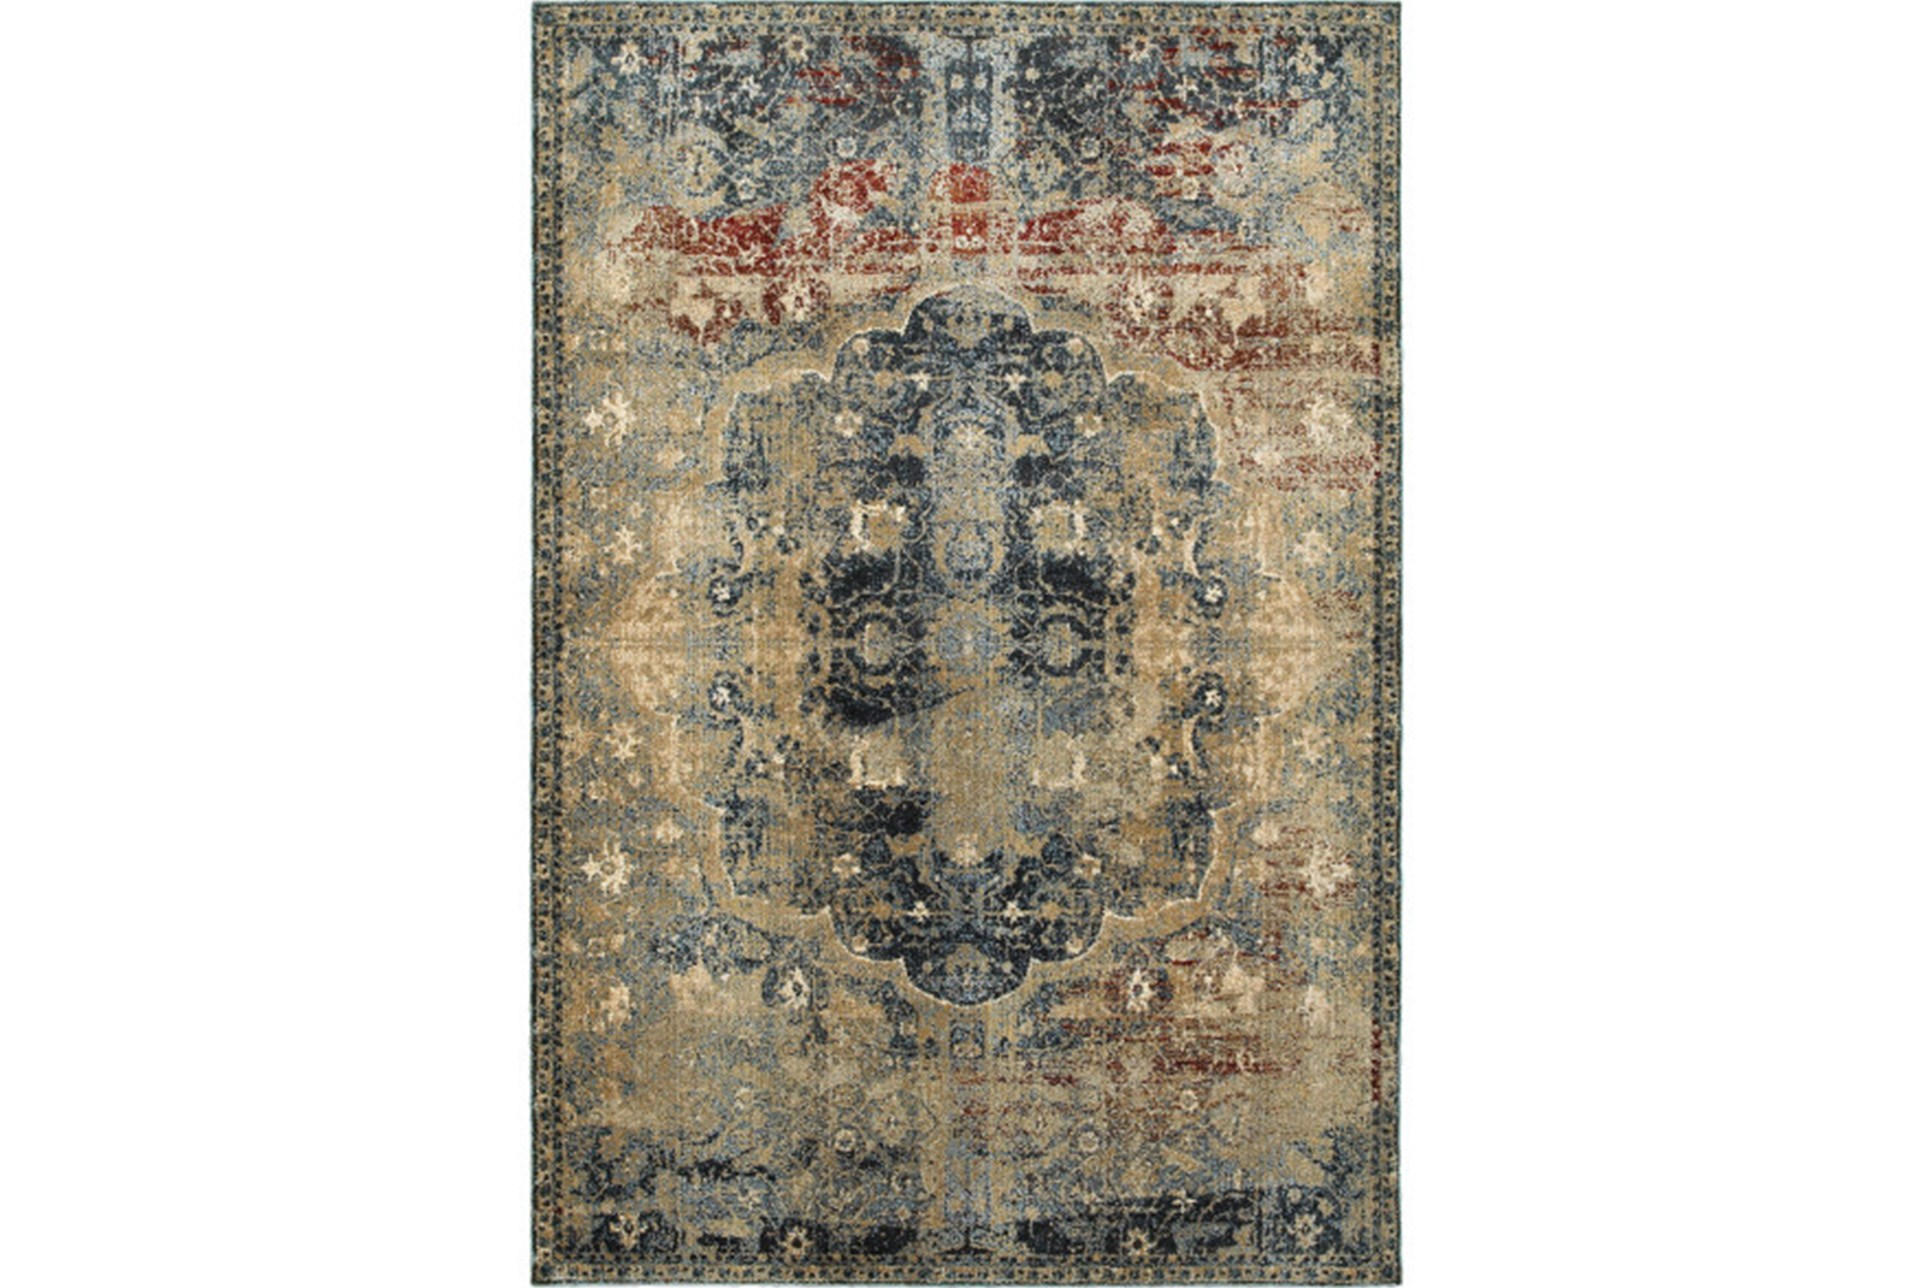 94x130 rug merick washed spice